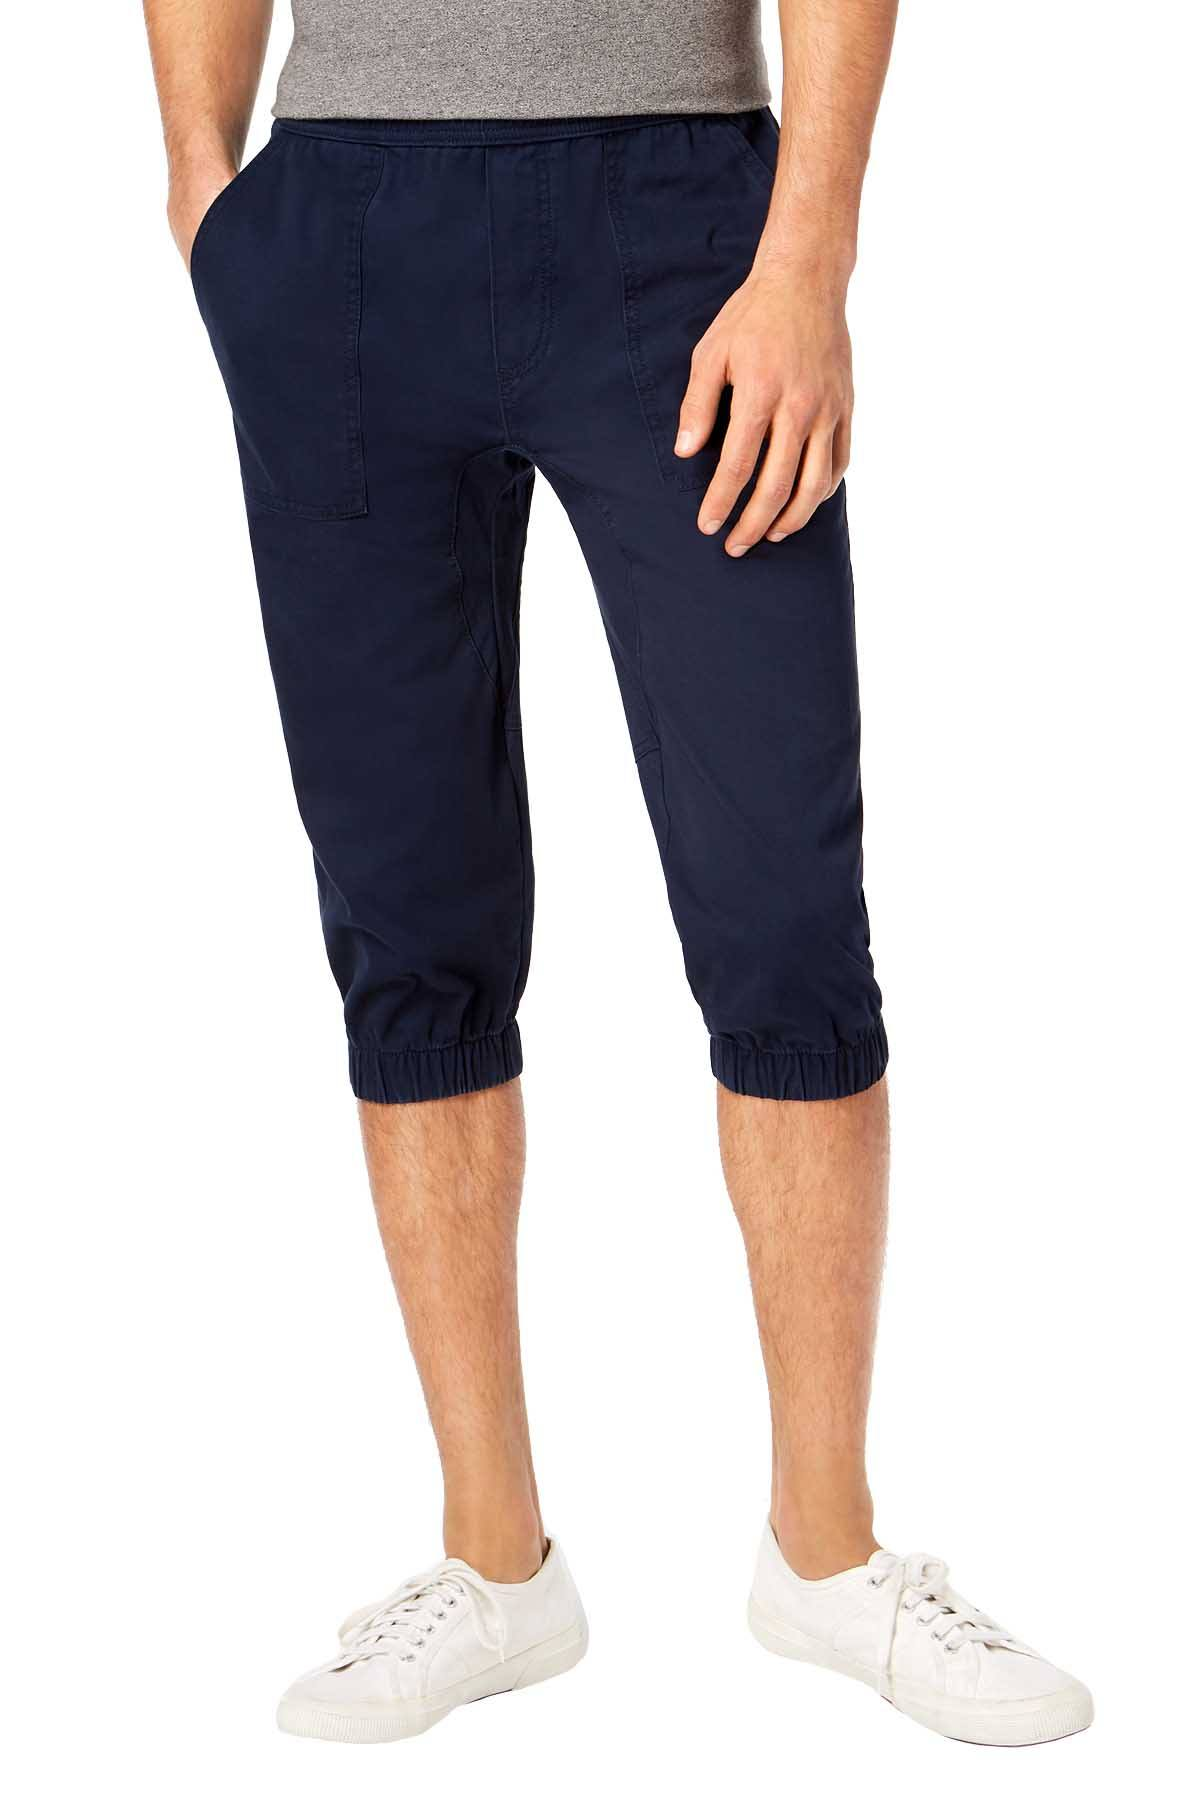 American Rag Basic Navy Stretch Cropped Jogger